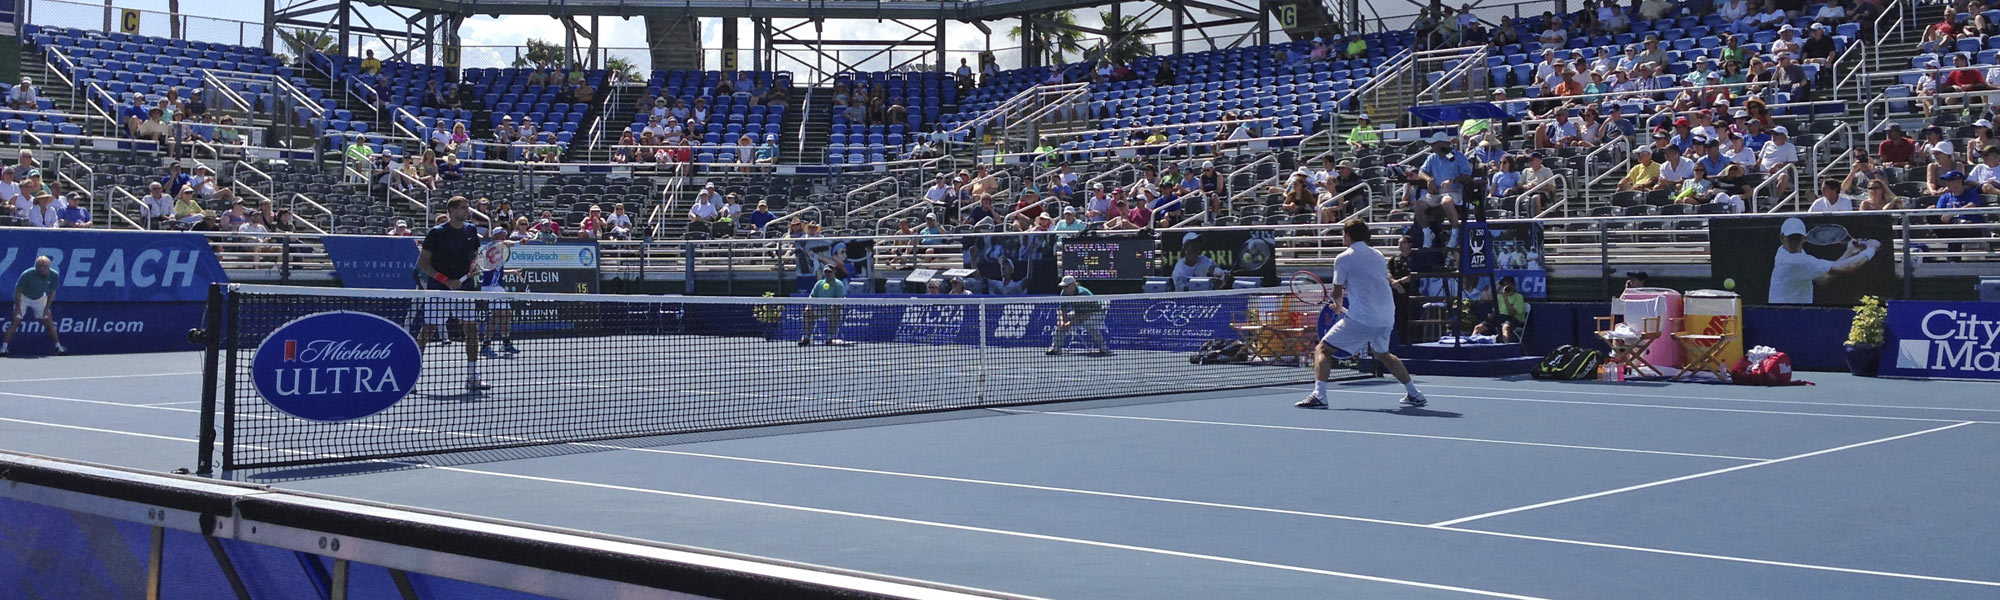 delray-beach-open-series-bestseats-img-1